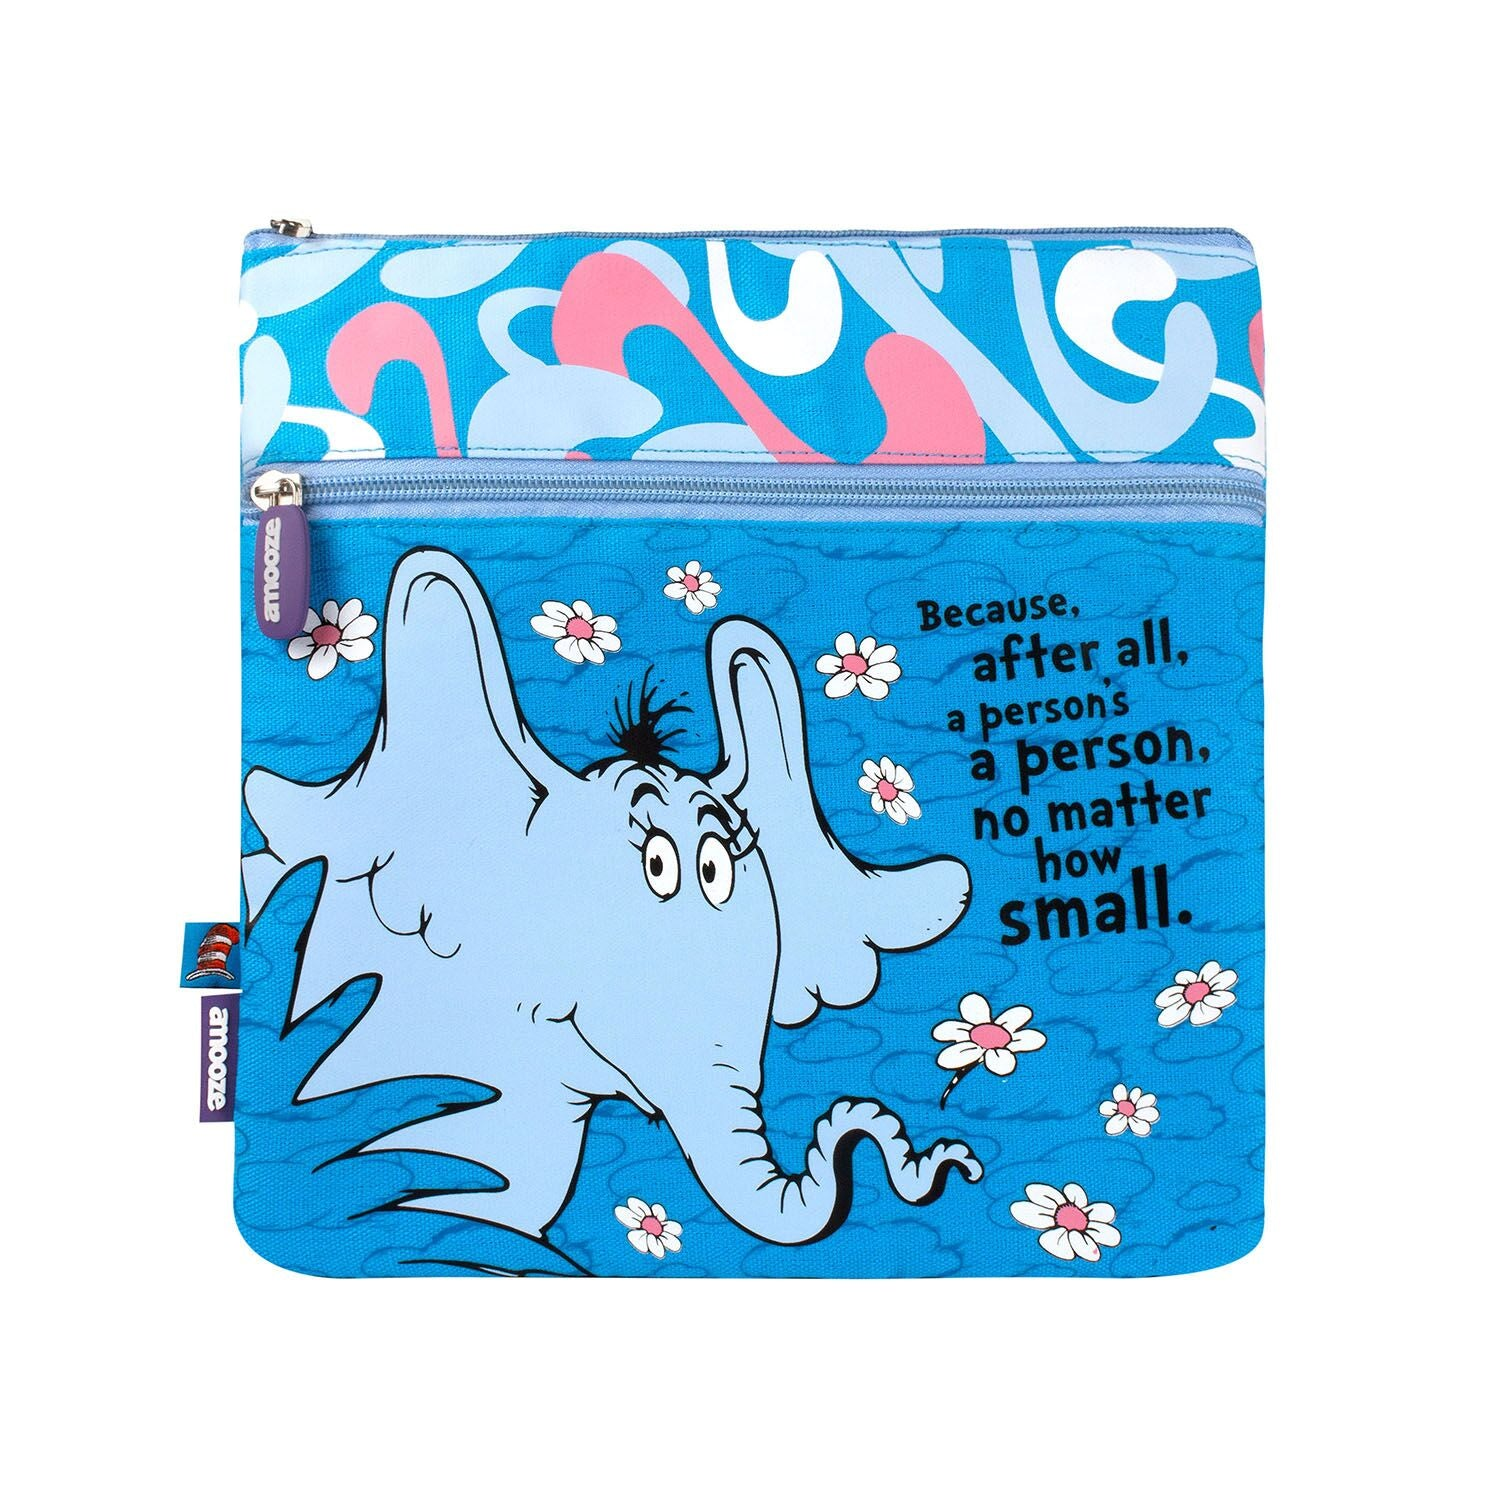 Dr Seuss Horton Hears A Who Pencil Case